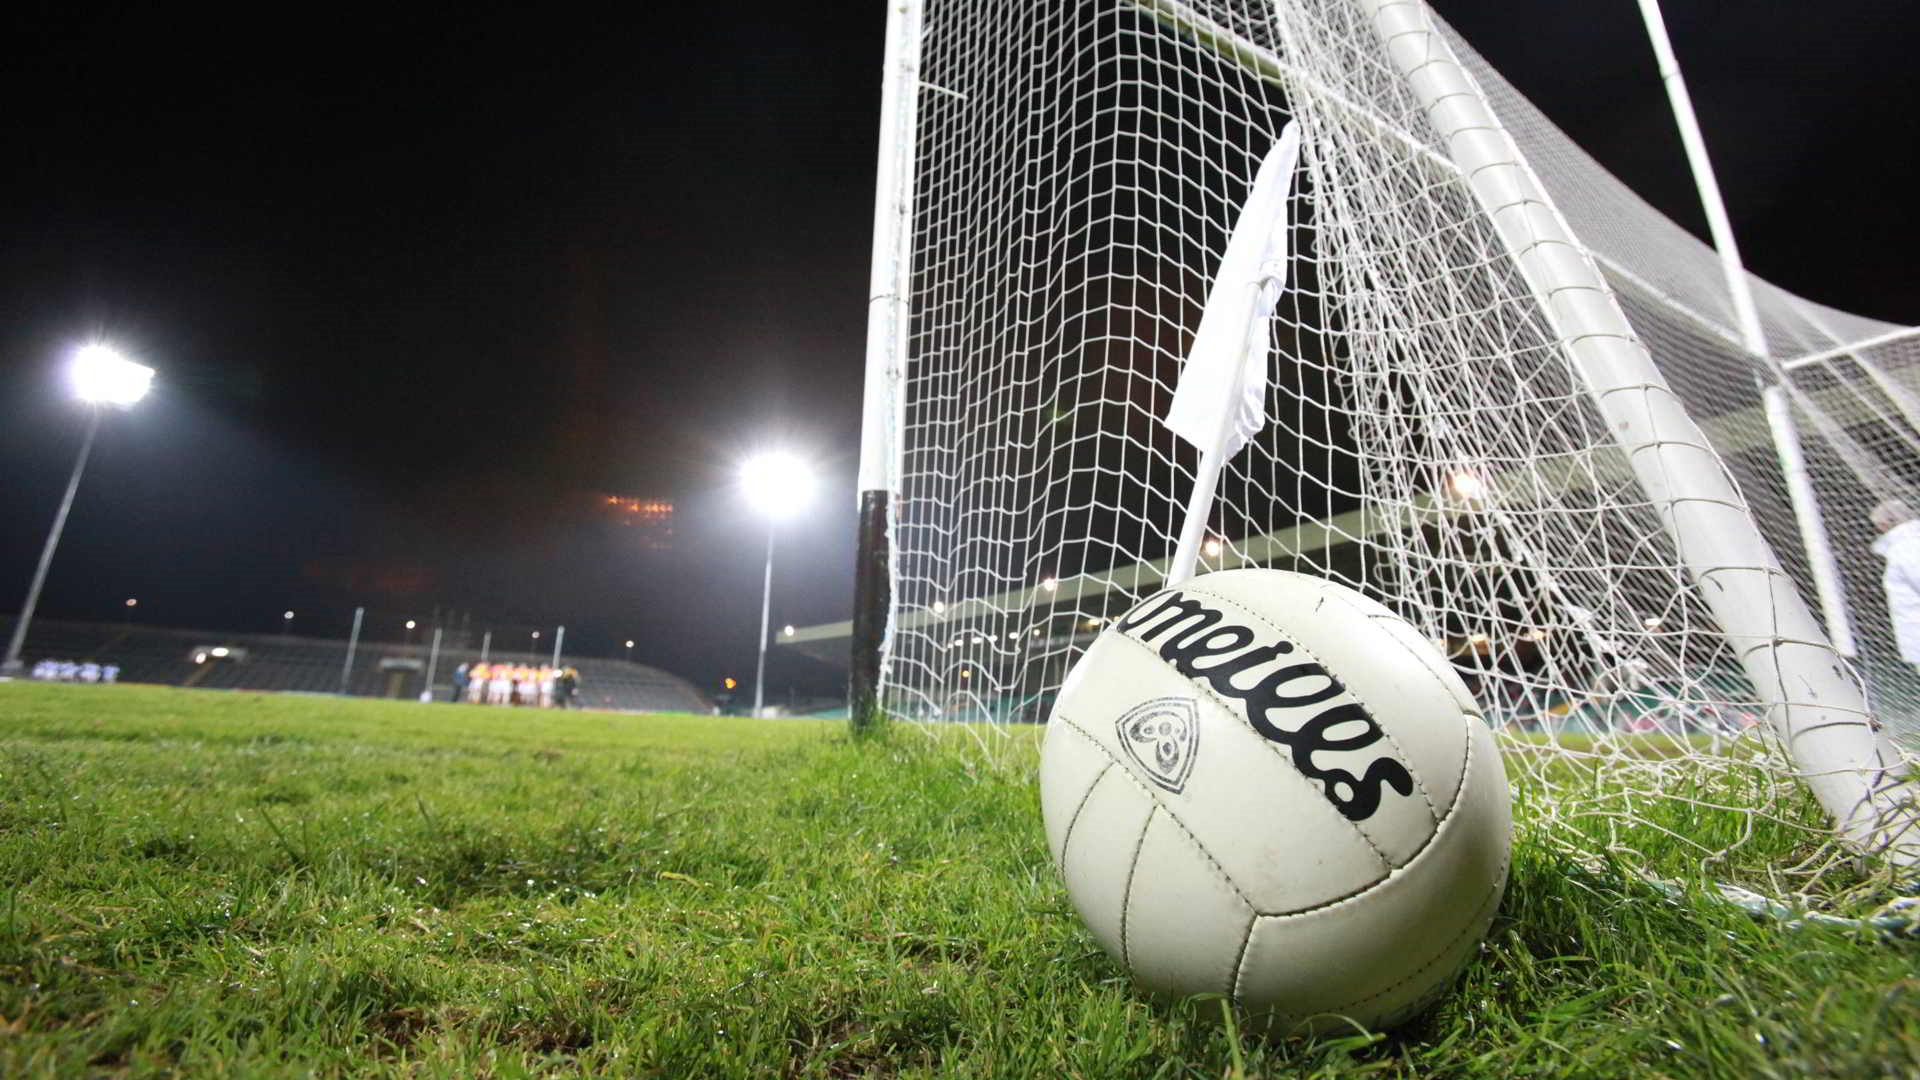 The Nire through to Sunday's semi-final of the senior football championship